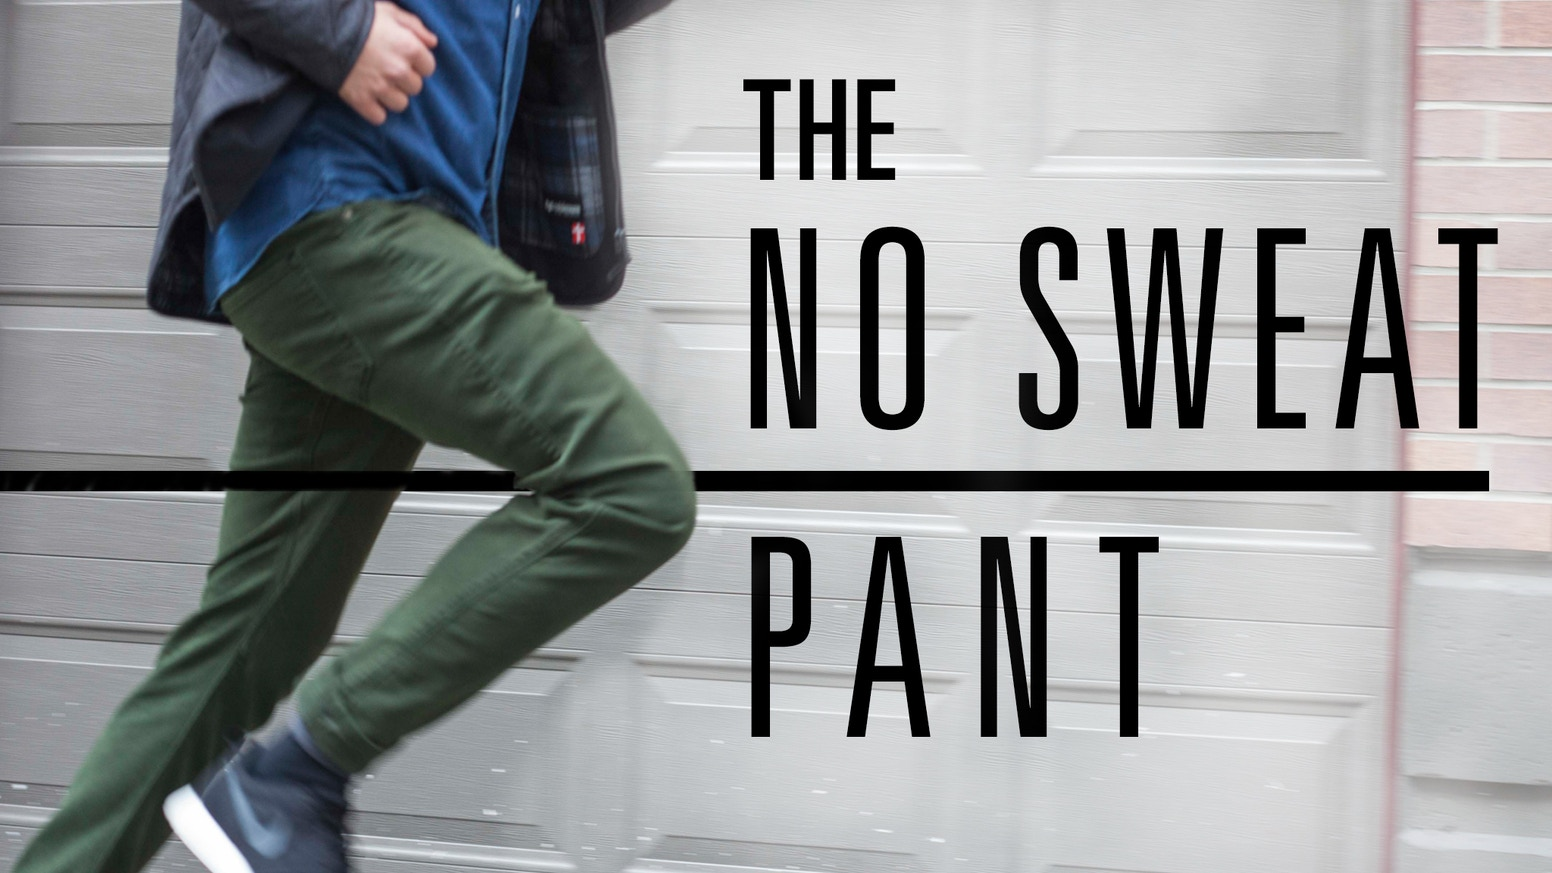 You no longer have to wear uncomfortable or restrictive pants that make you sweat and prevent you from performing or looking your best. Shop the original No Sweat Pants online now, with new styles added for 2018.